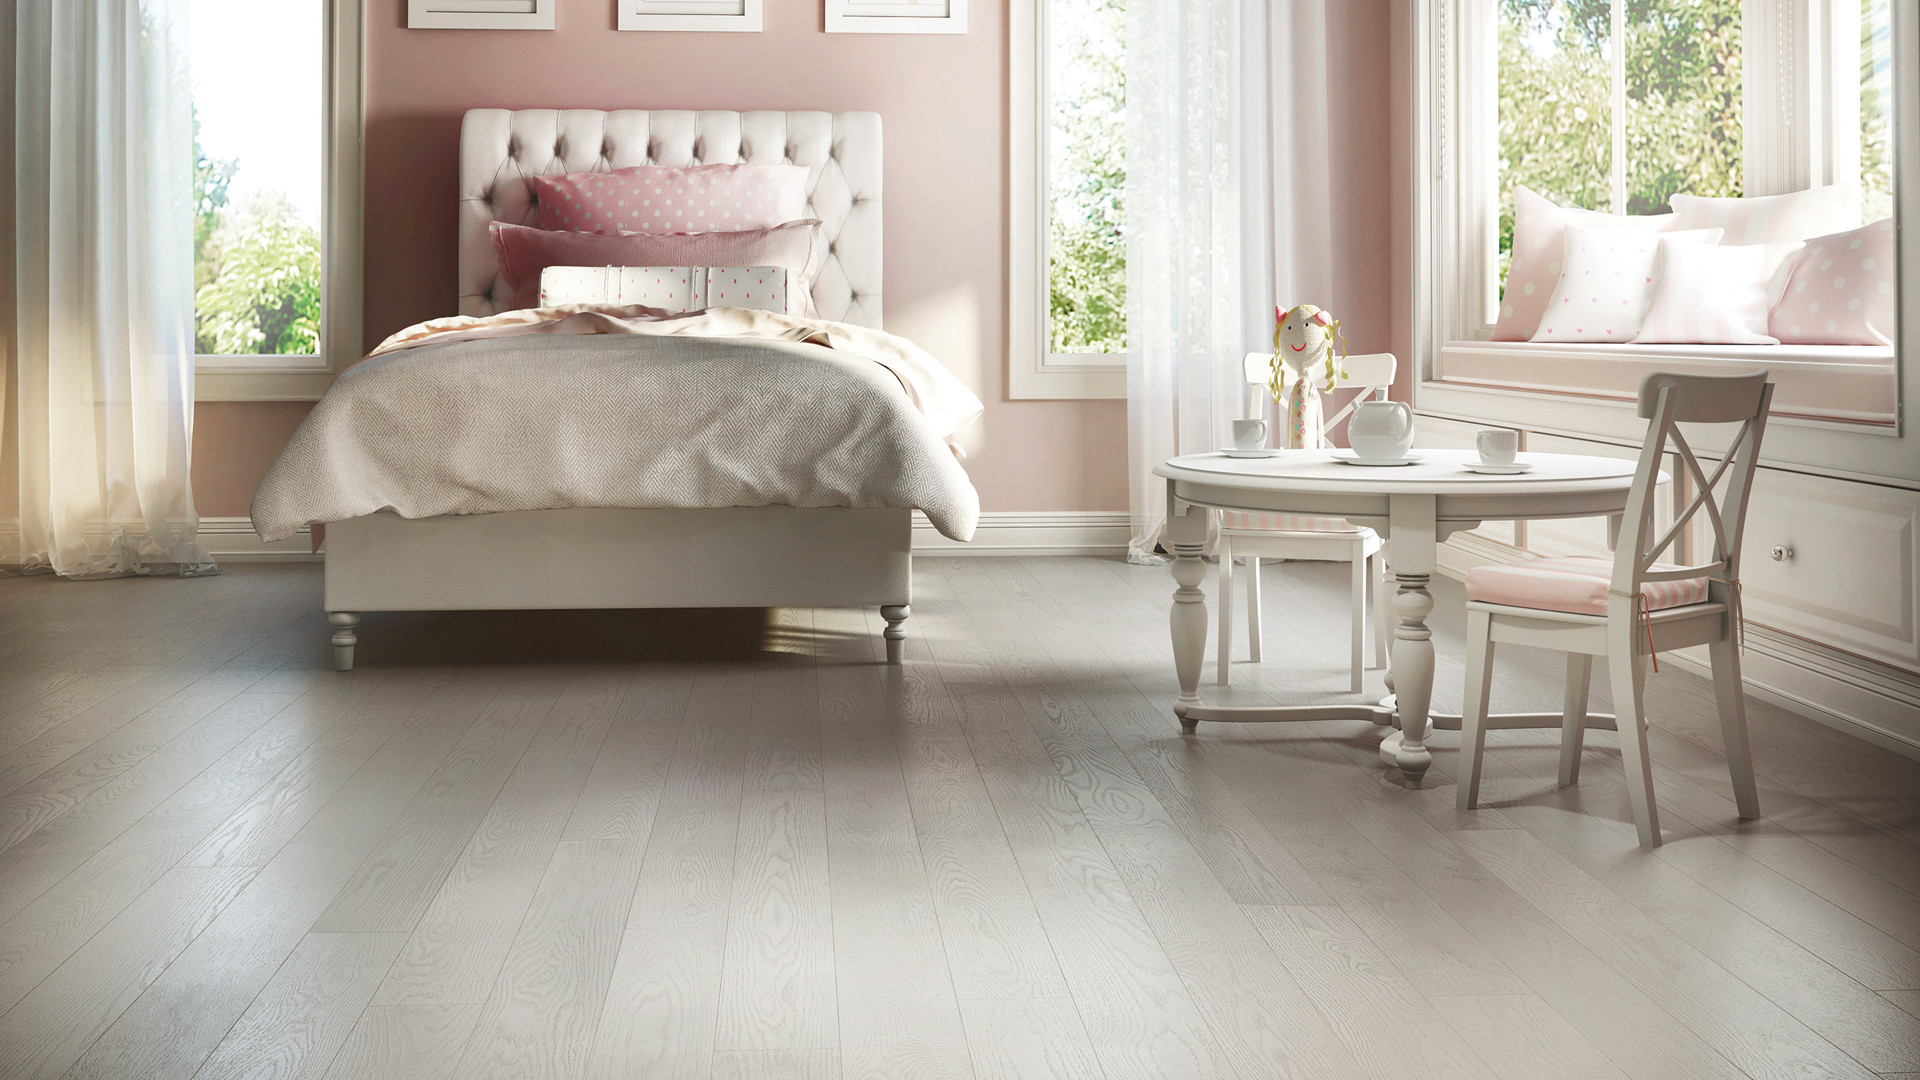 homes with different color hardwood floors of 4 latest hardwood flooring trends of 2018 lauzon flooring in new colors in the urban loft series